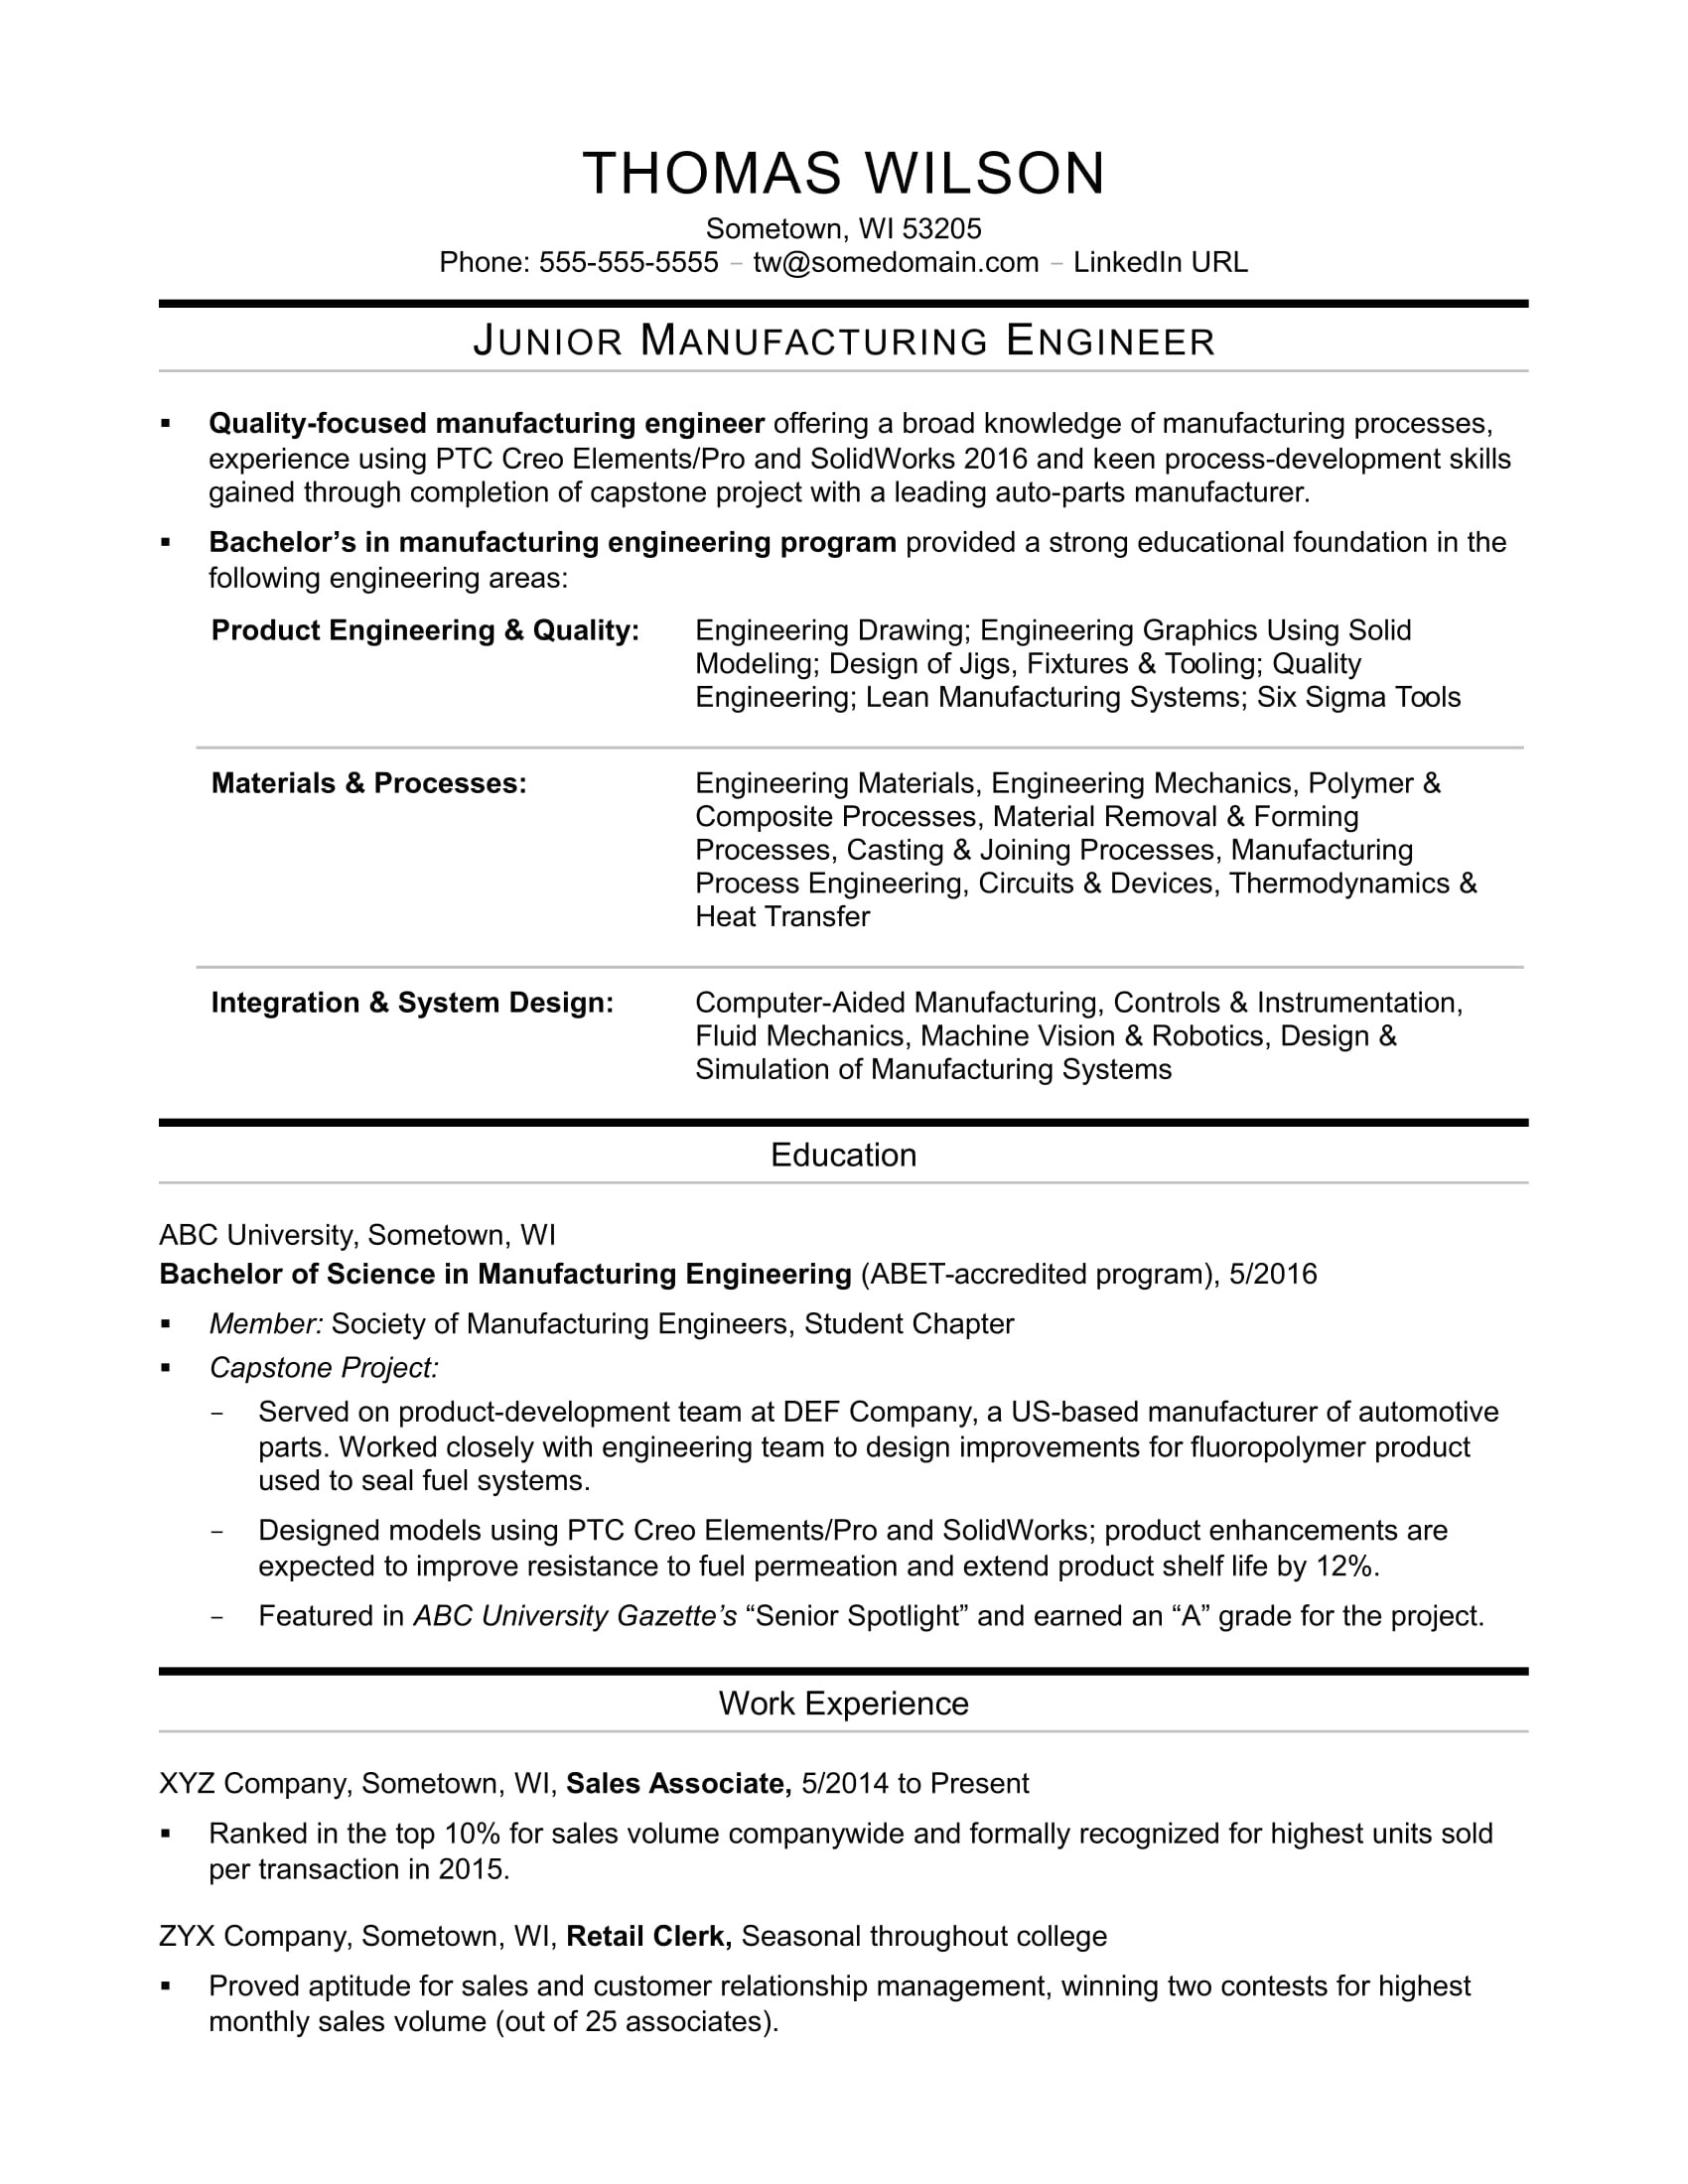 Fabrication Engineer Resume Sample Sample Resume for An Entry Level Manufacturing Engineer